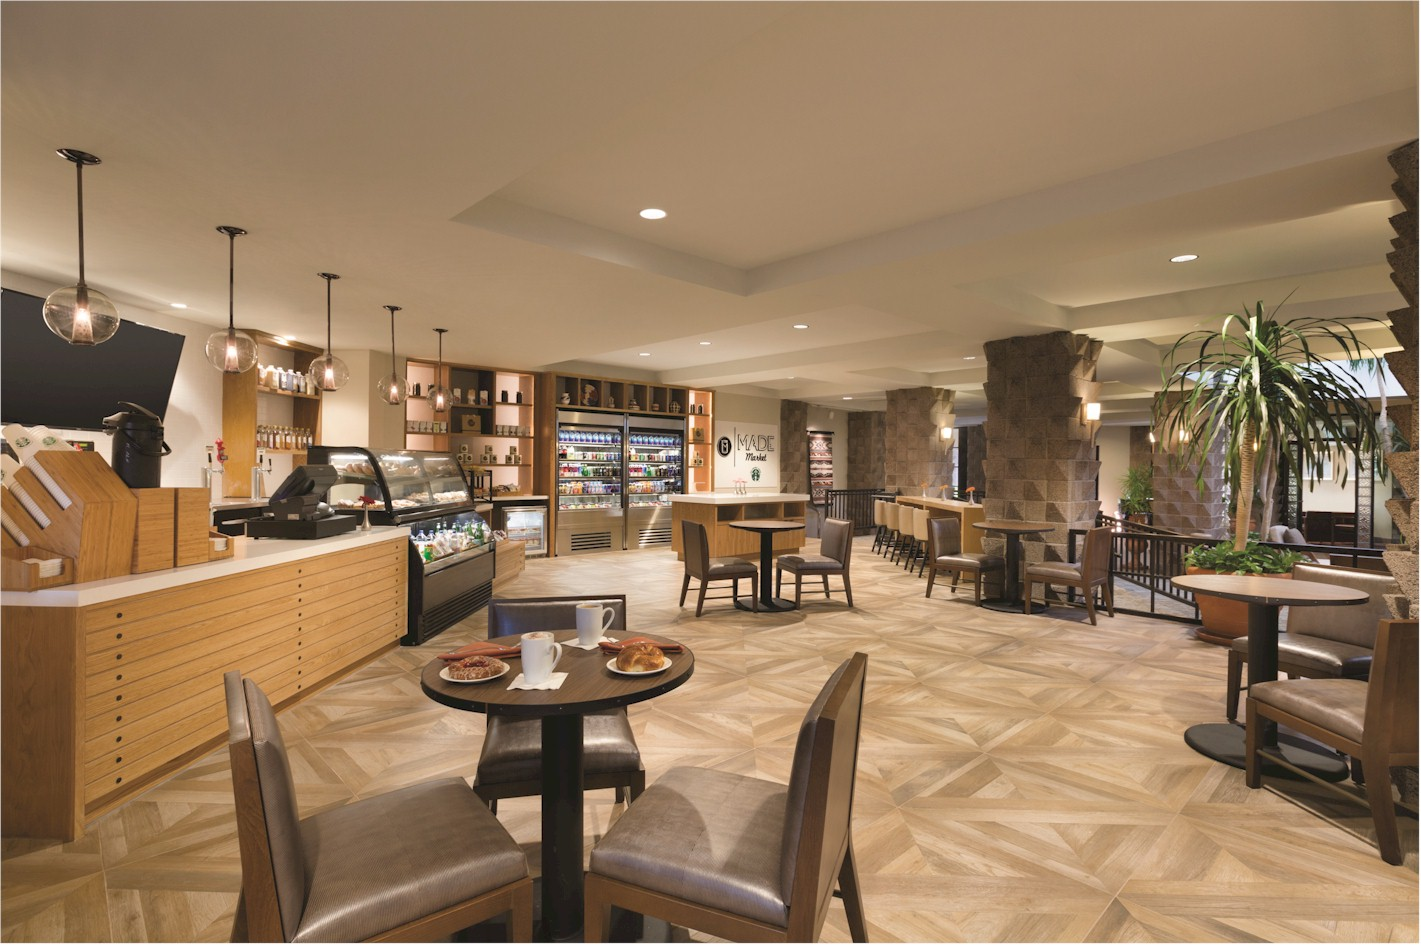 Made Market at Doubletree Paradise Valley presents a fresh look to an open grab-and-go market - think of it as a mix between Pret a Porter and Starbucks. Photo credit - VRX Studios